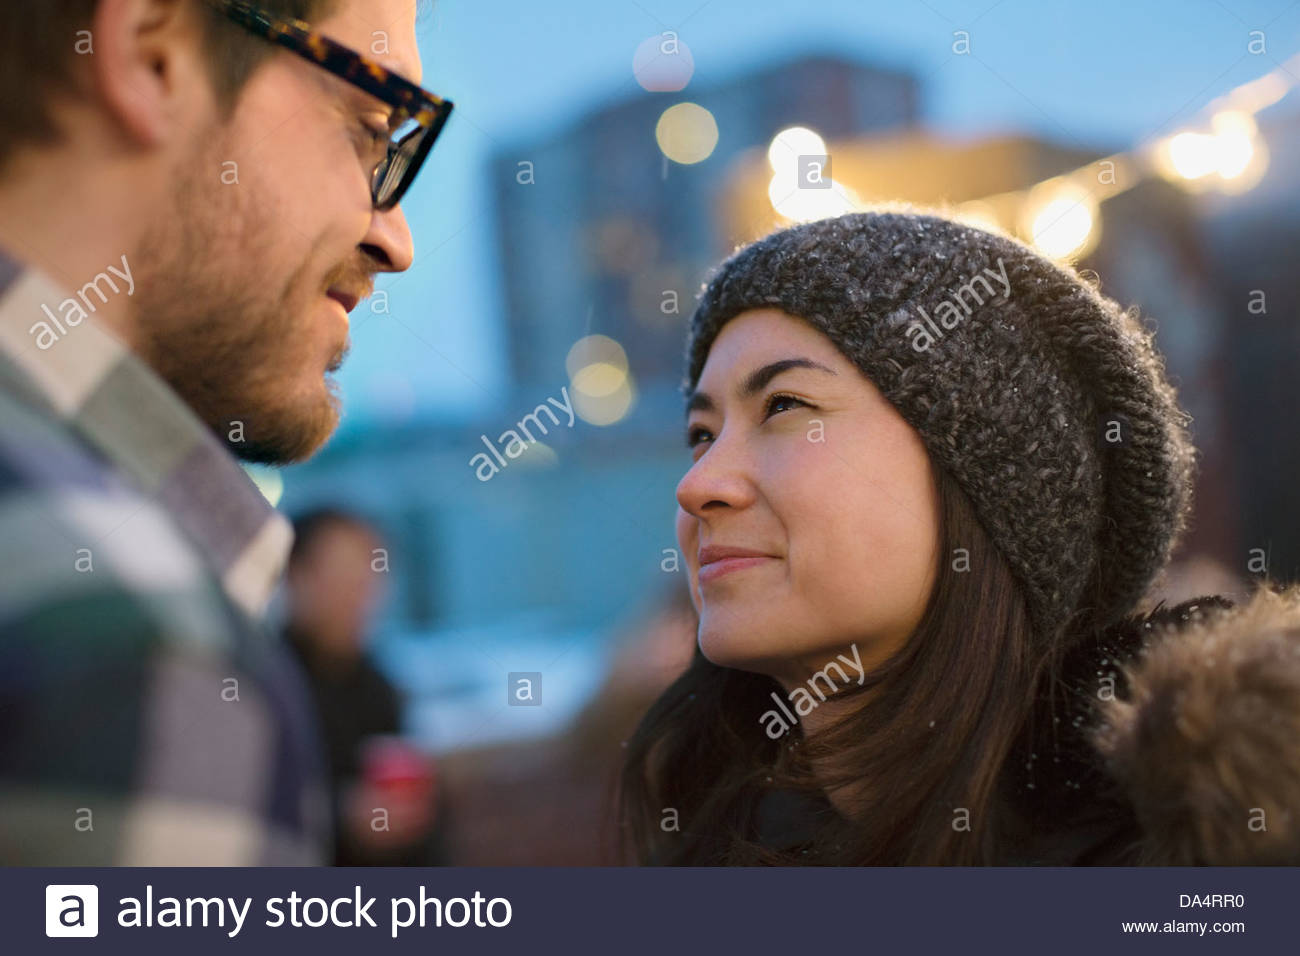 Couple on rooftop celebrating with friends - Stock Image